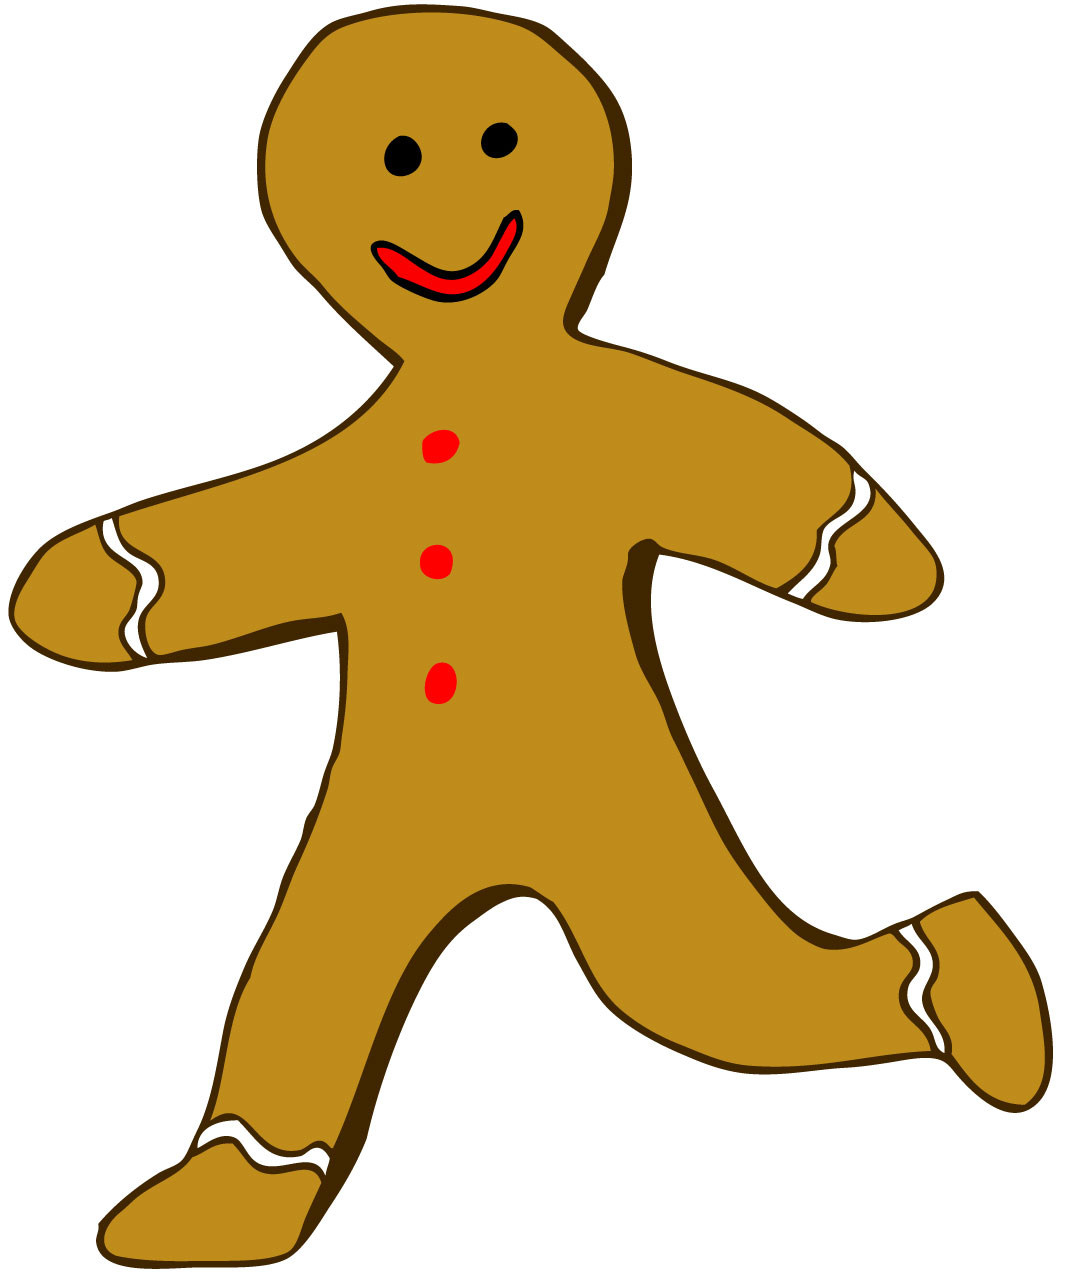 Gingerbread man running clipart.